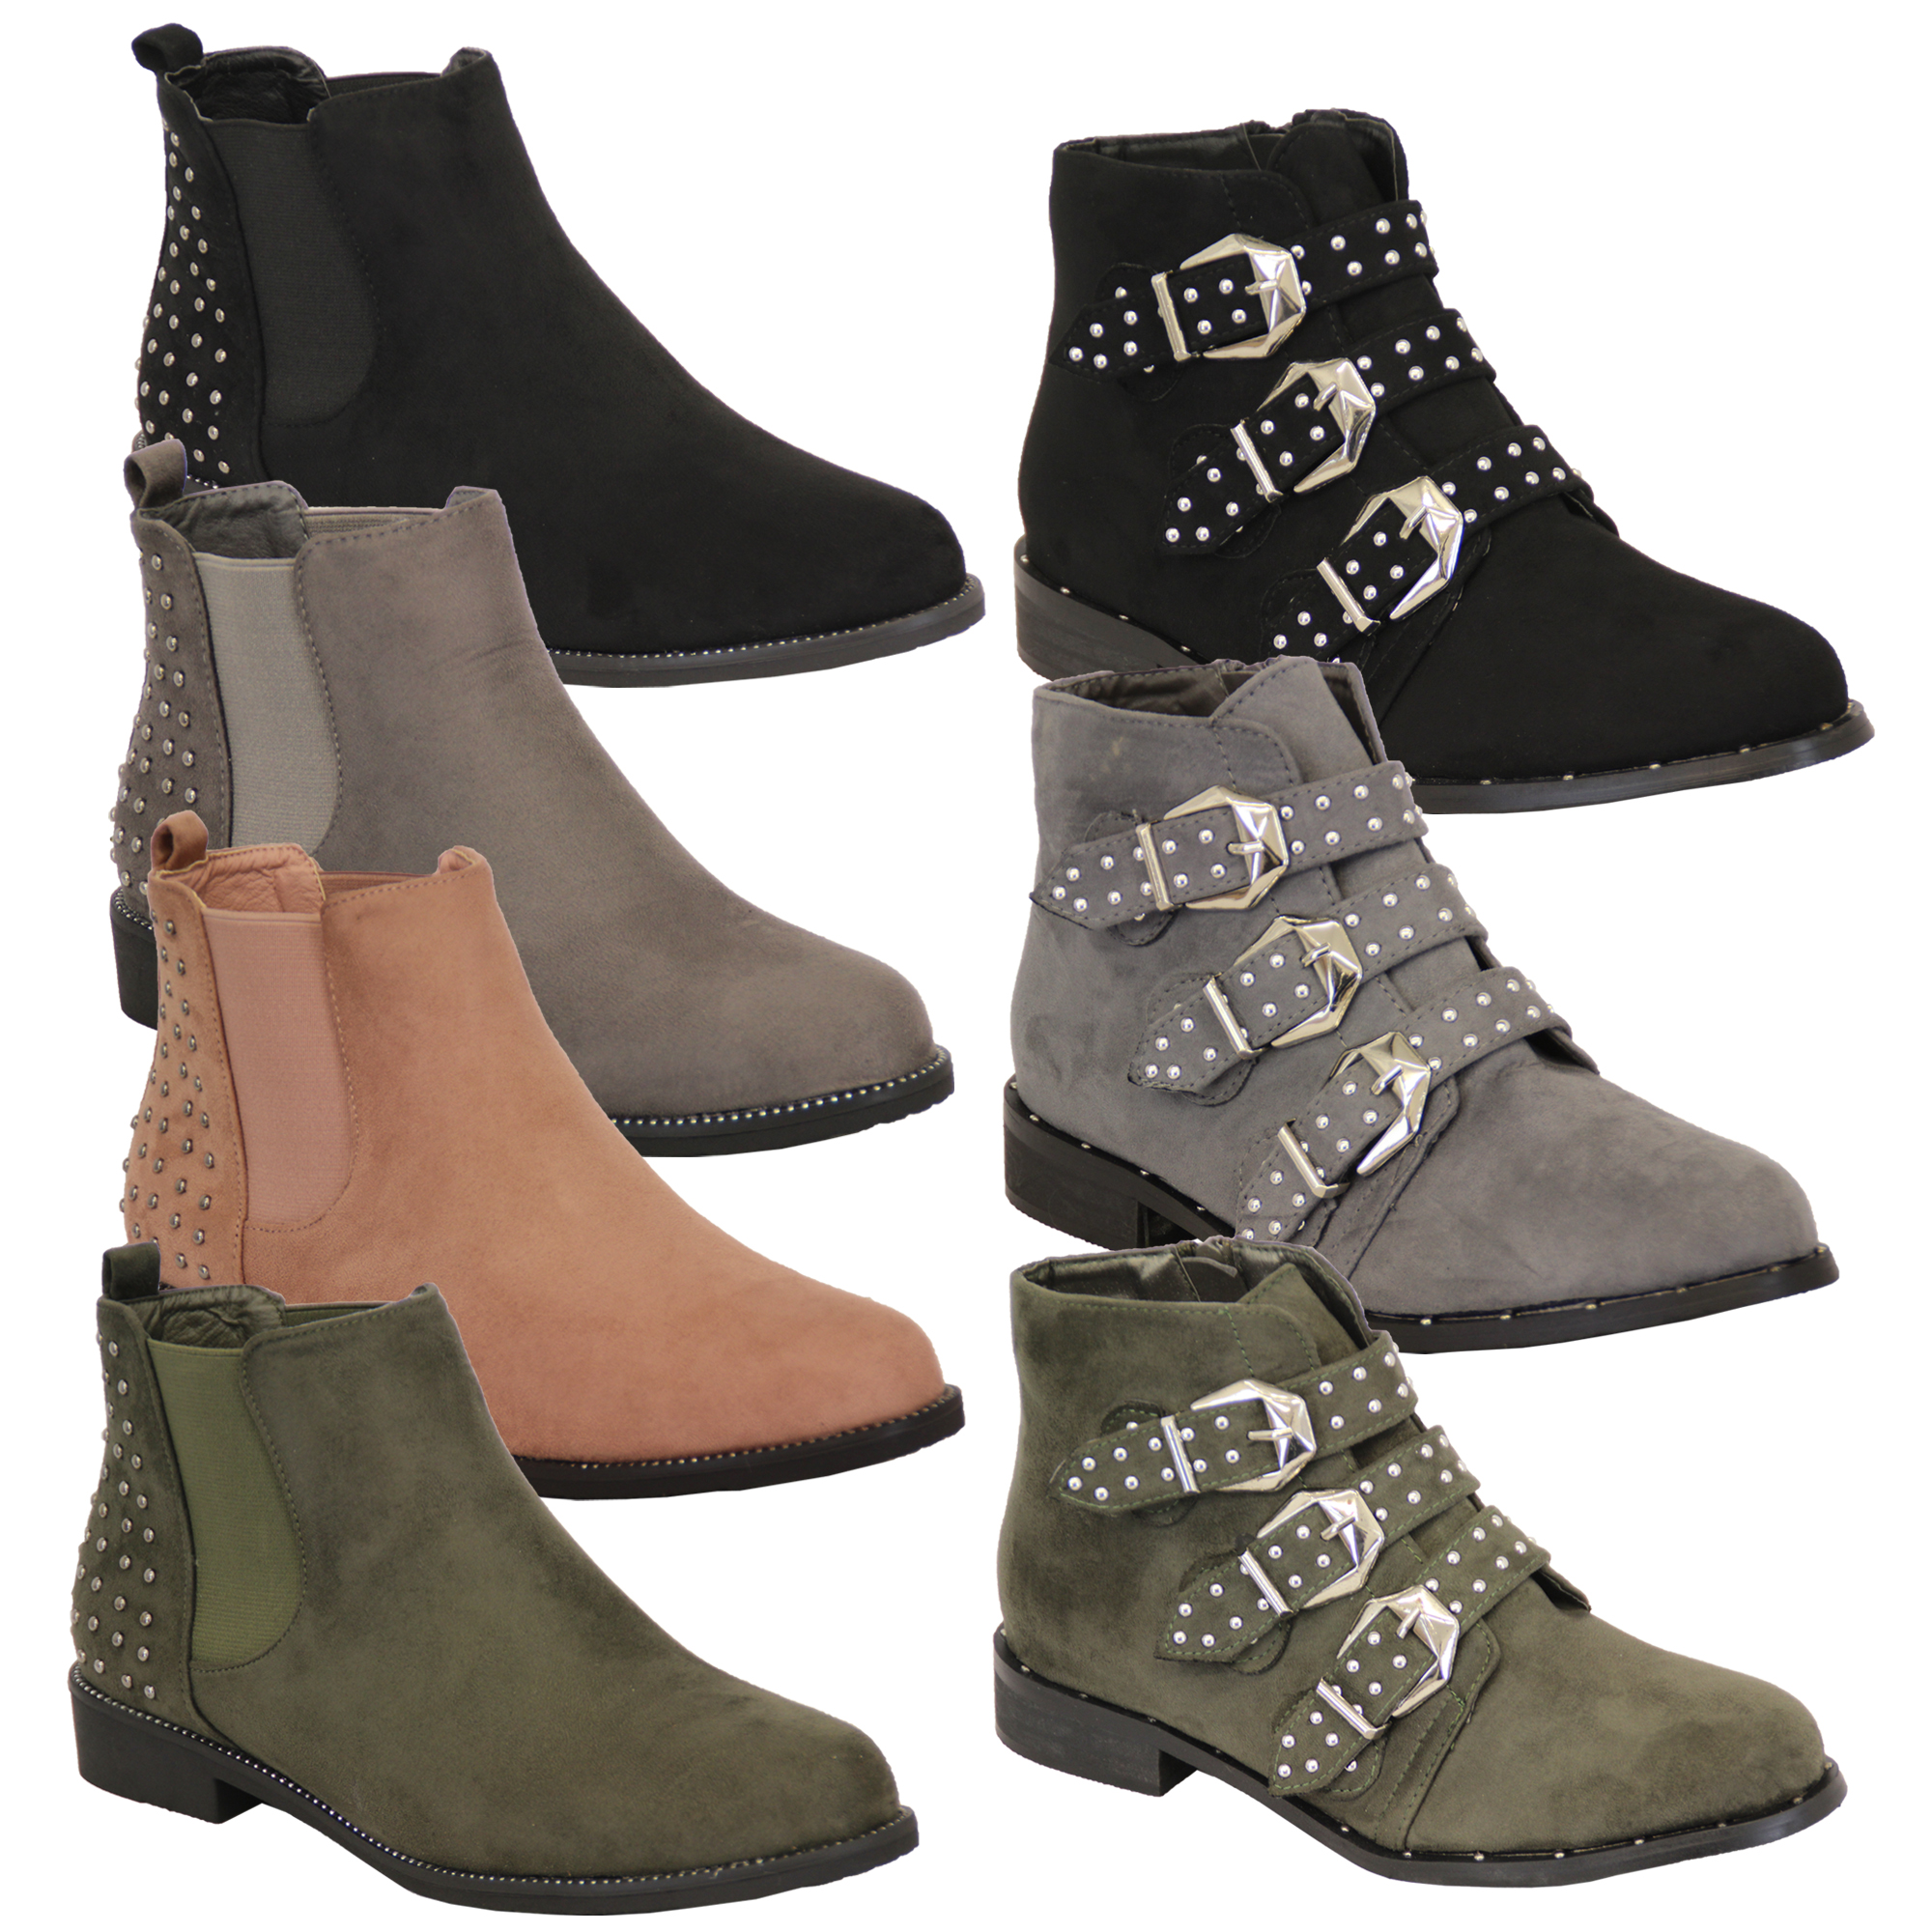 Ladies-Chelsea-Biker-Boots-Womens-Suede-Look-Studded-High-Ankle-Zip-Buckle-Shoes thumbnail 10